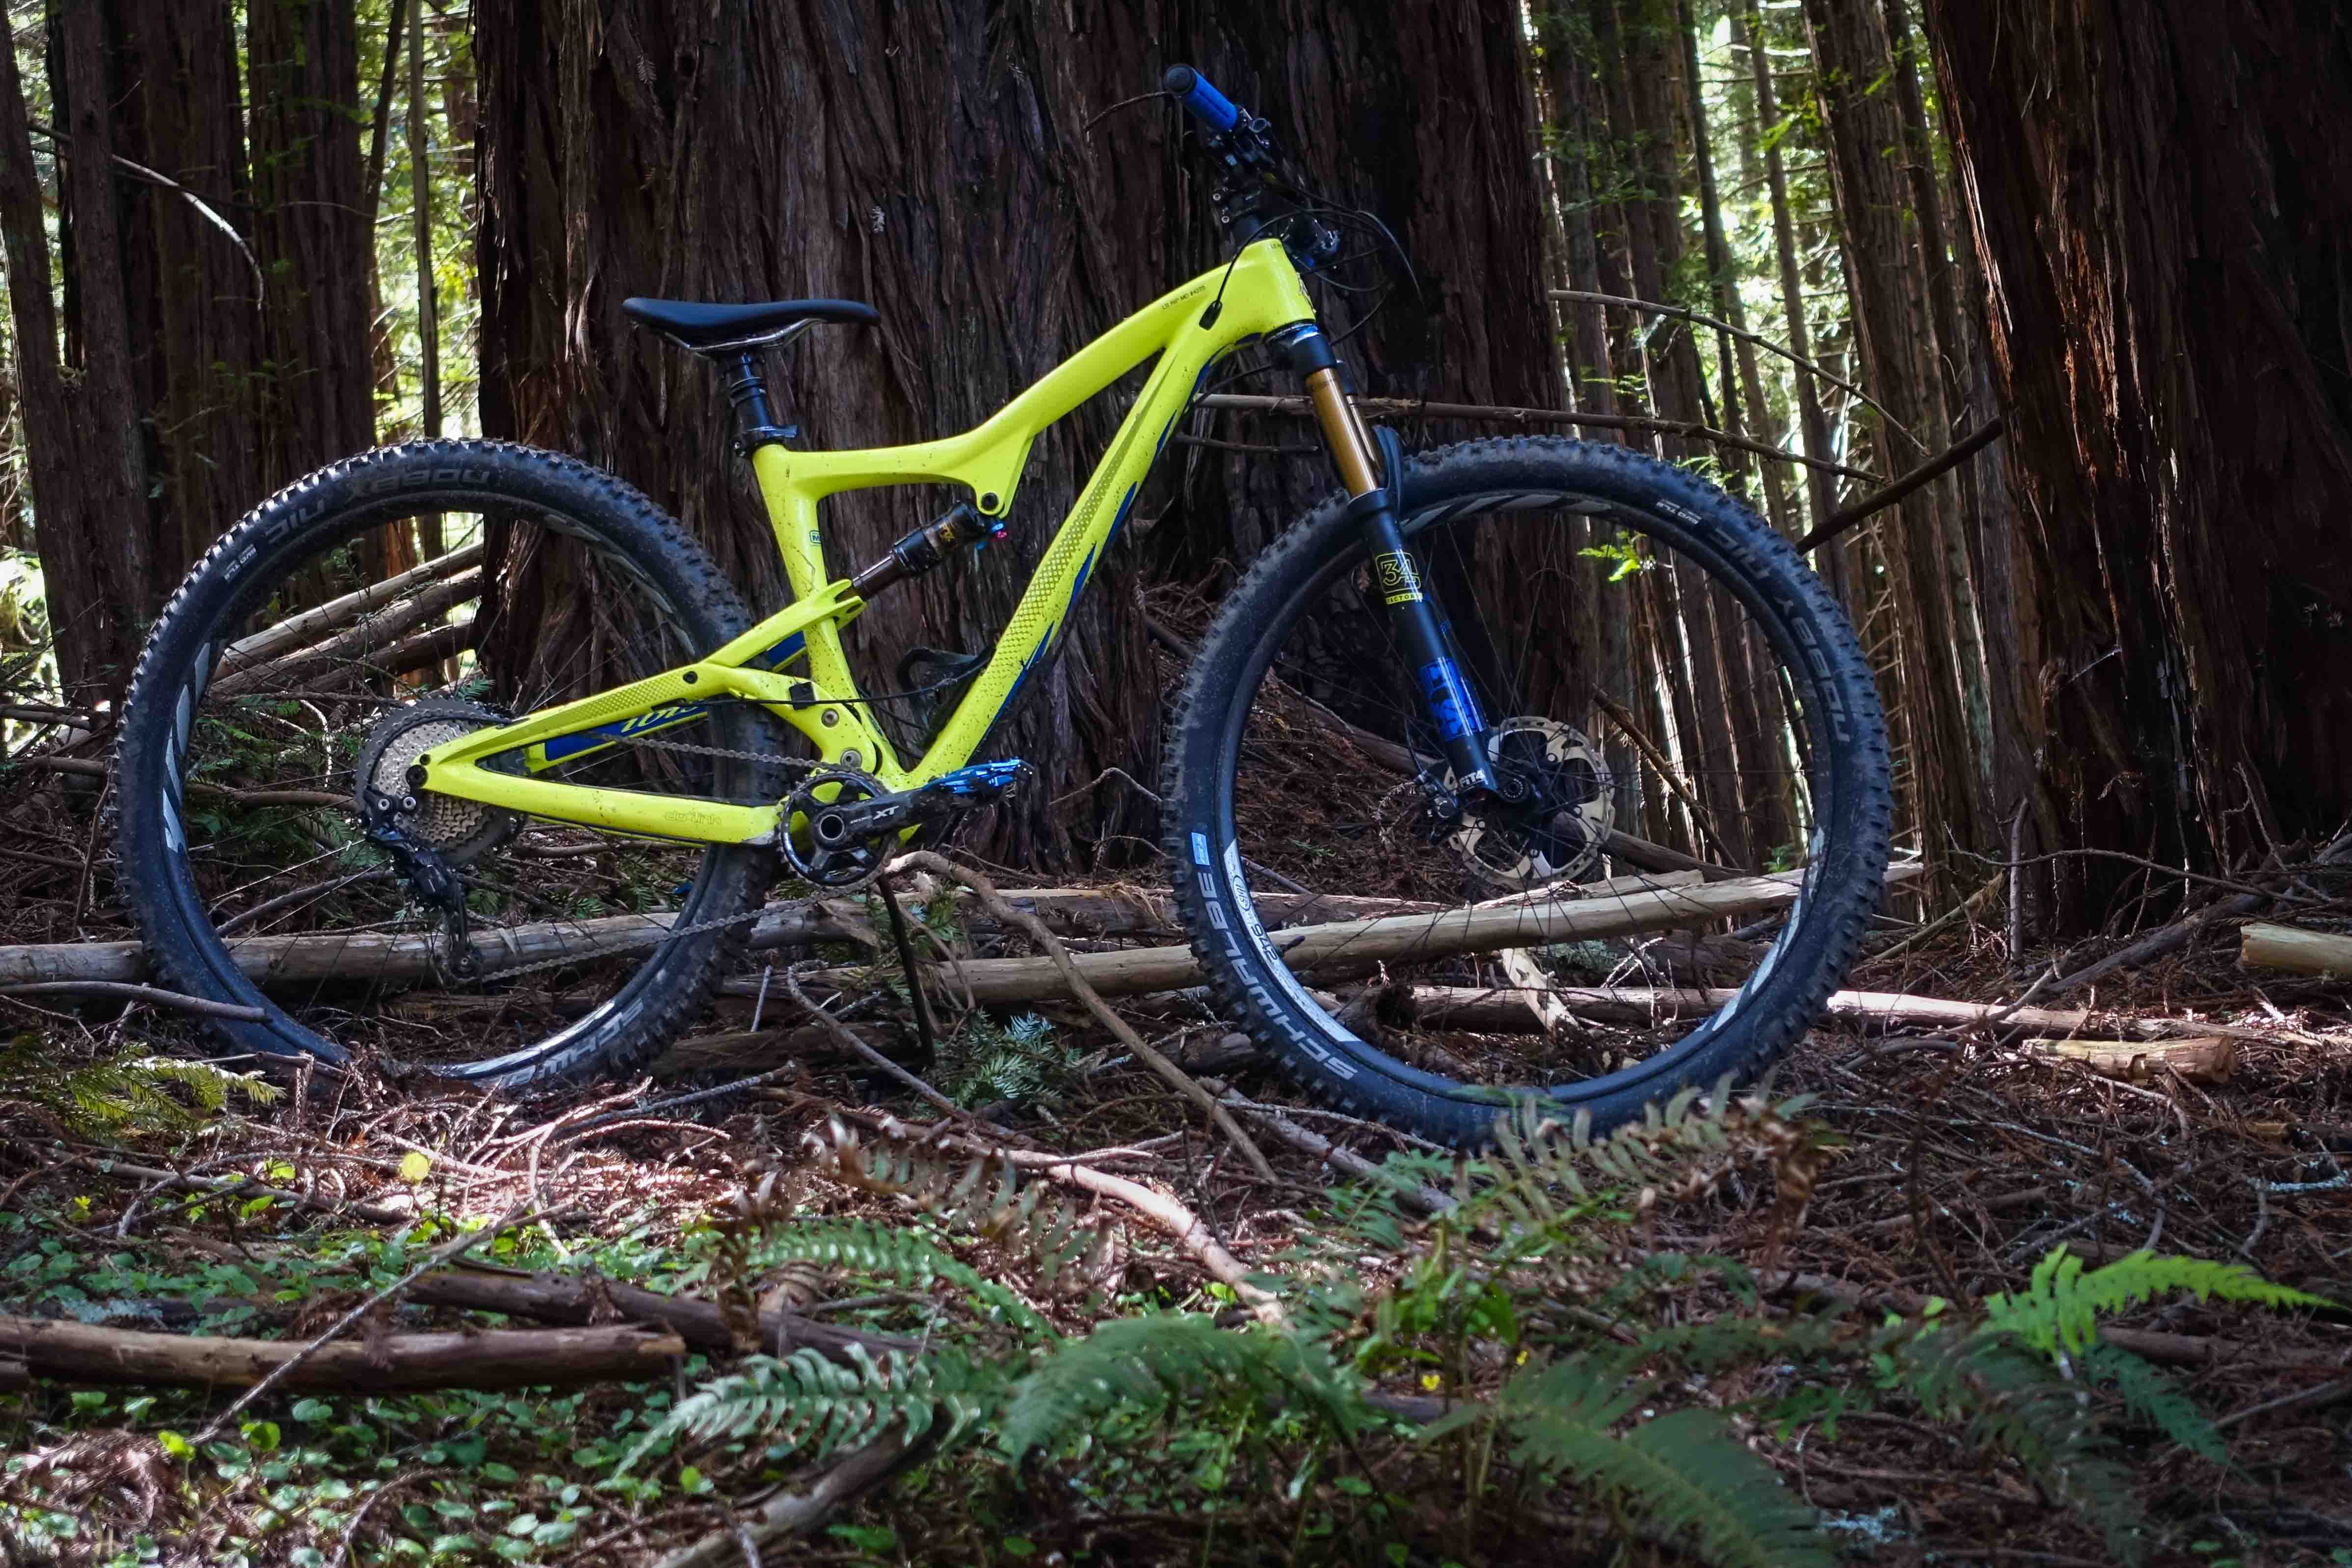 The new V3 version of the Ibis Ripley LS retains the same geometry and kinematics. The big difference is the improved tire clearance.